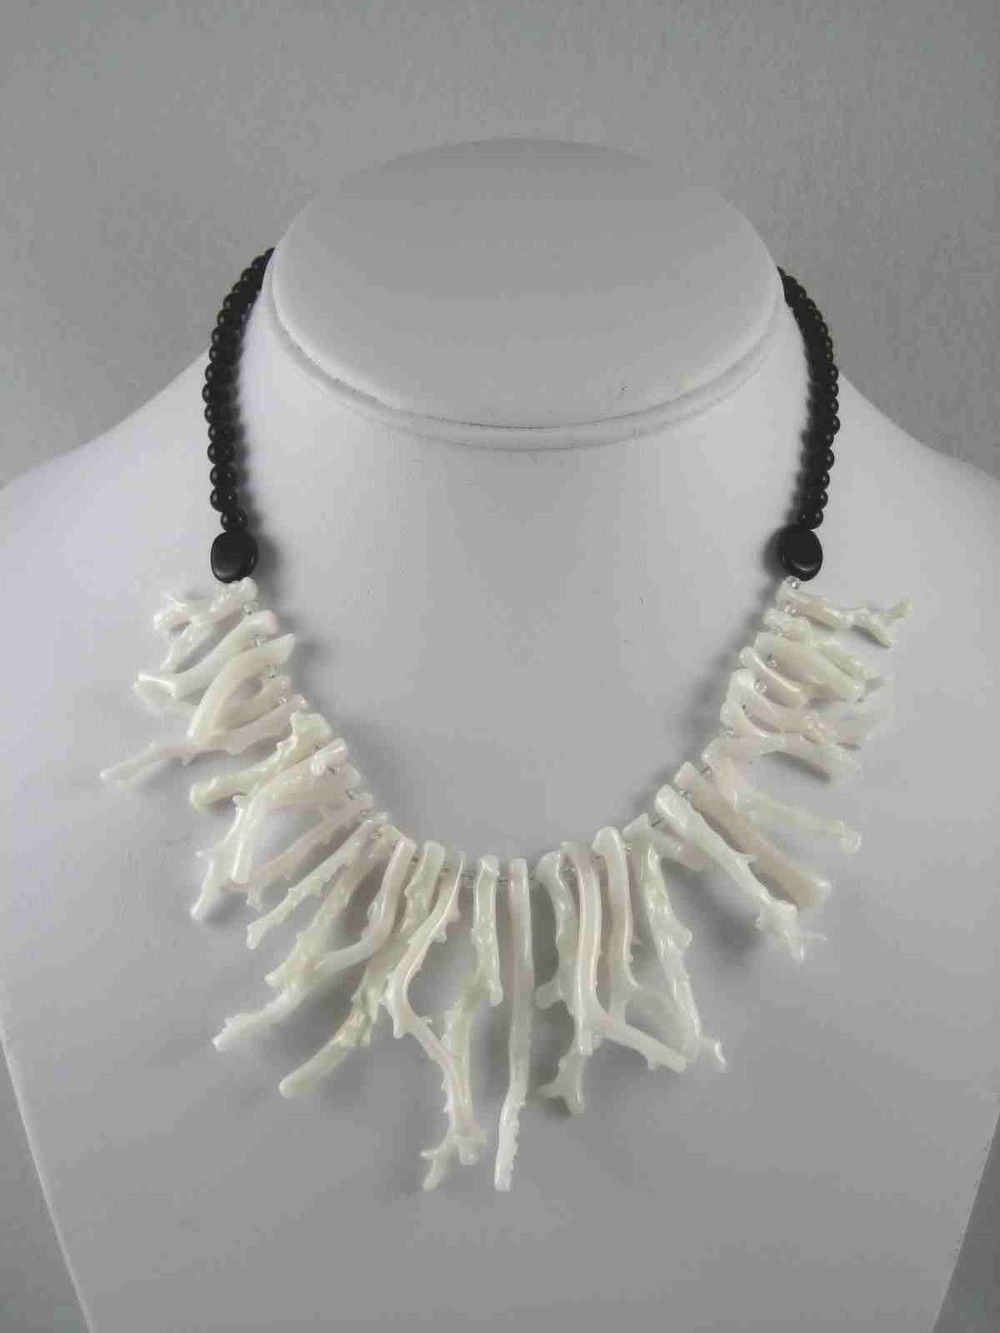 Coral Reef Necklace- White Coral, Onyx $135